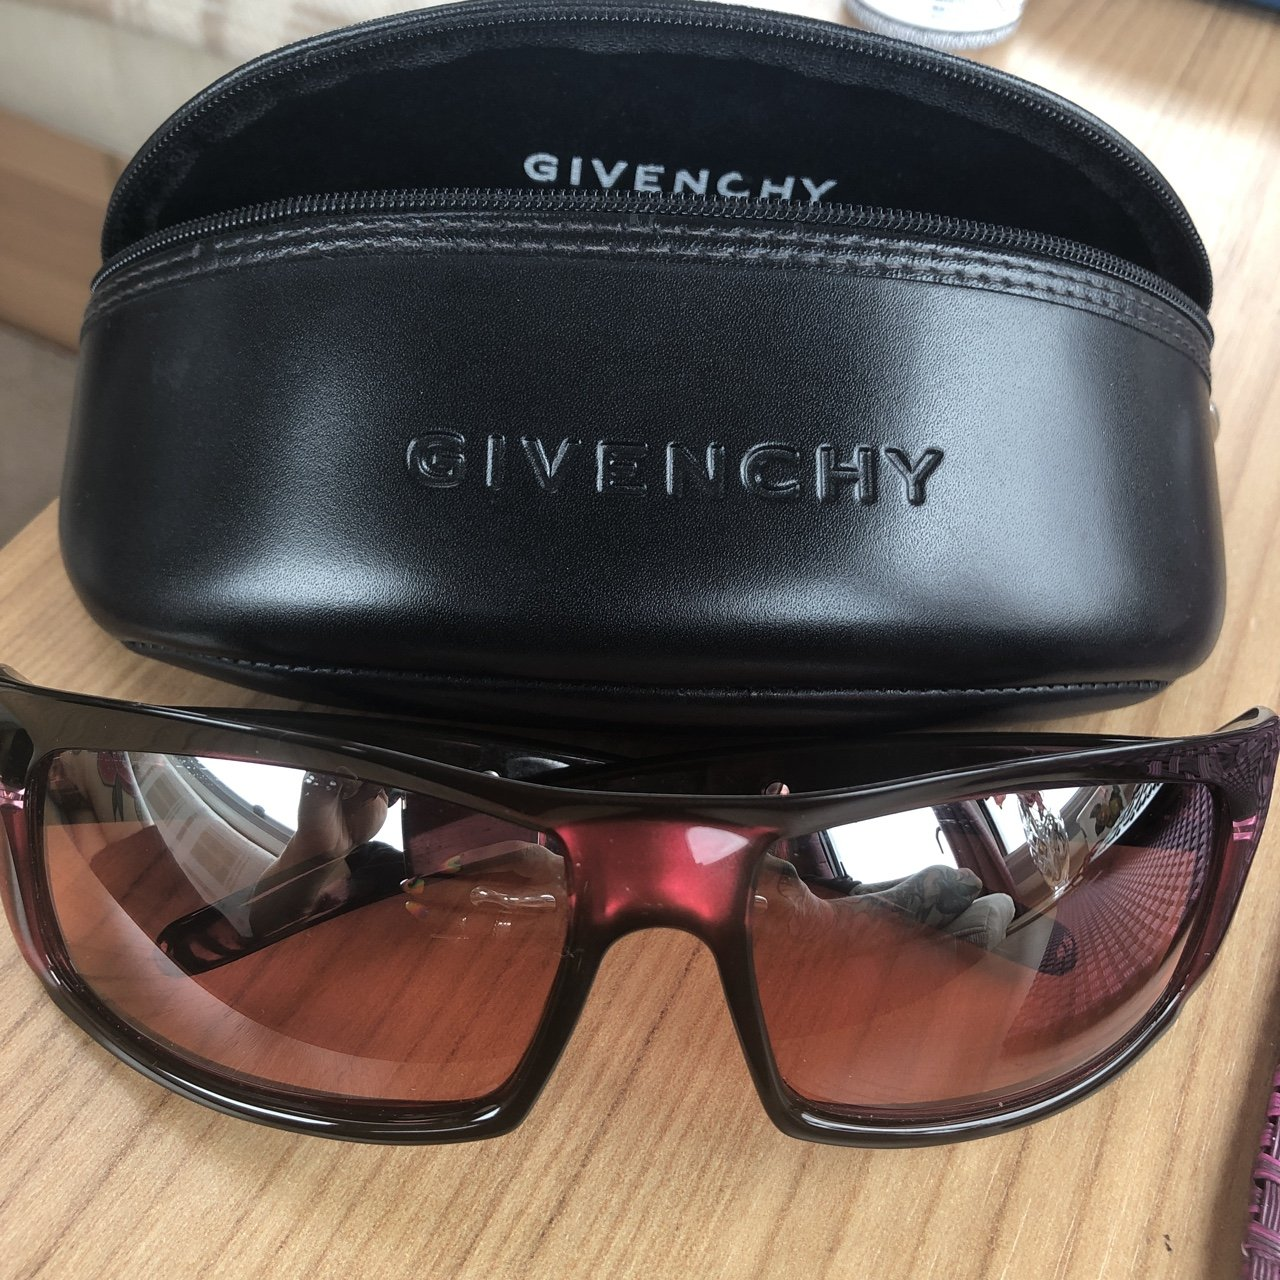 6c675f1288 Genuine givenchy sunglasses. Great condition